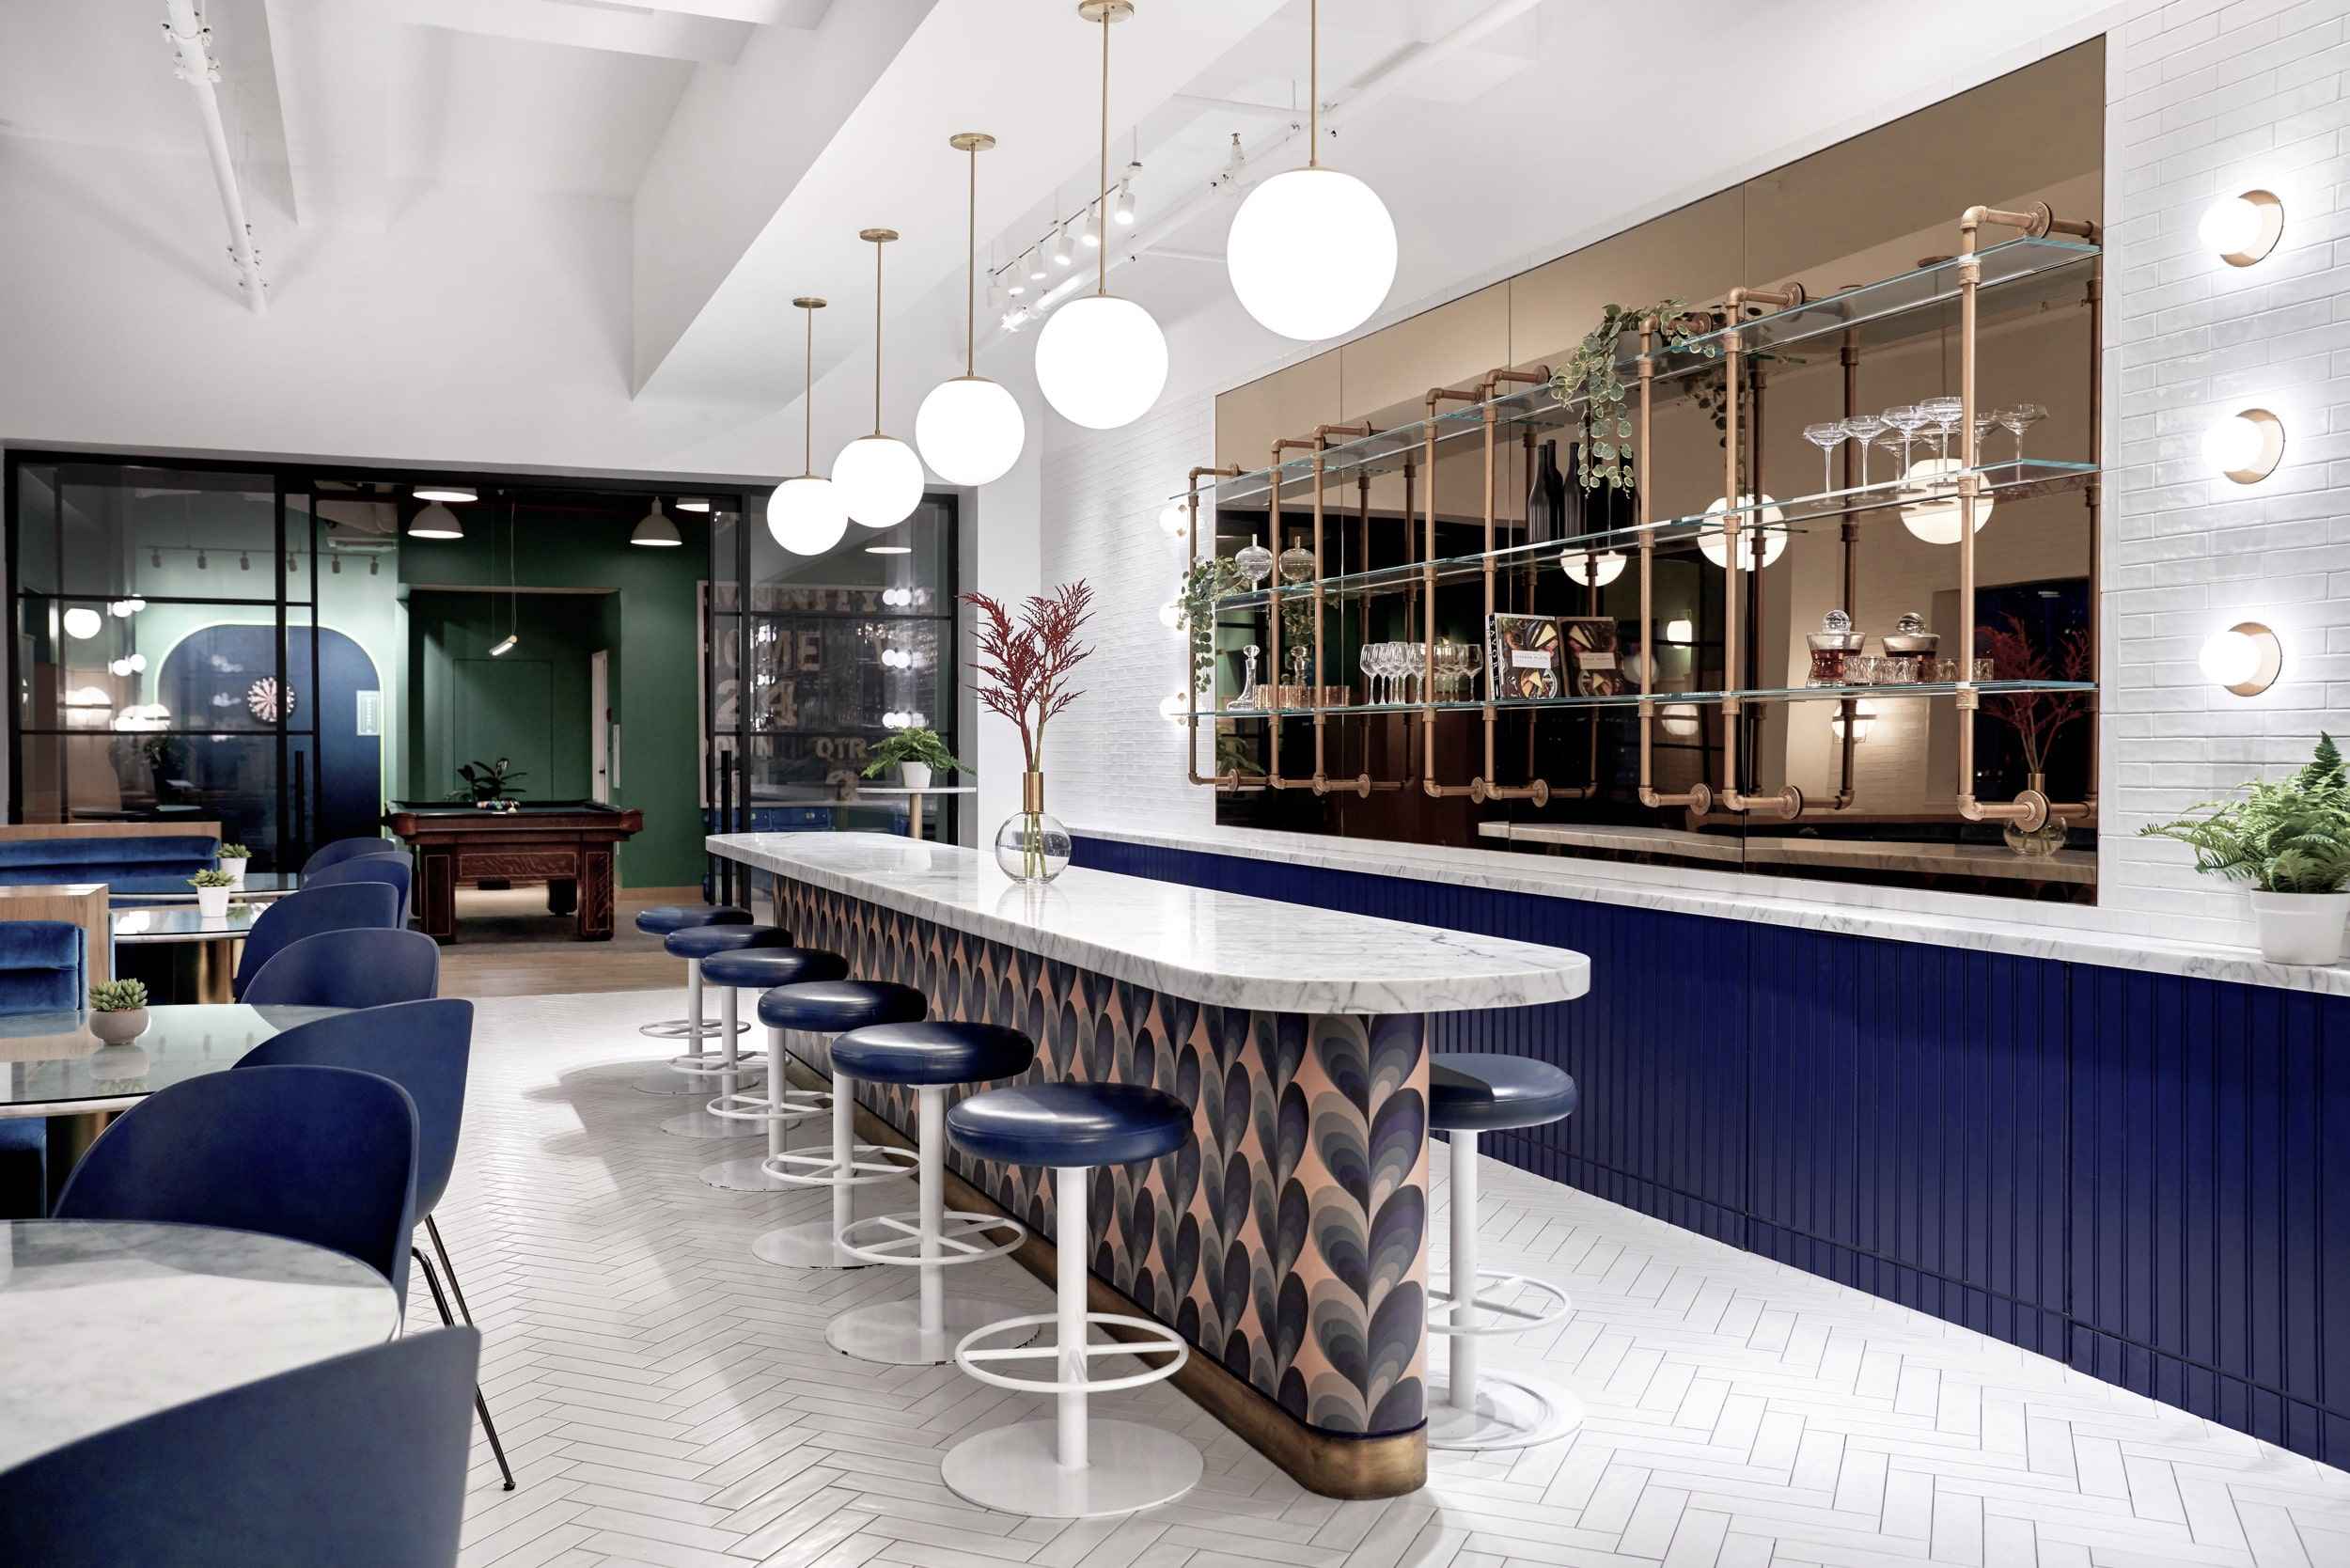 Bar stool seating in the Herald Towers Cafe